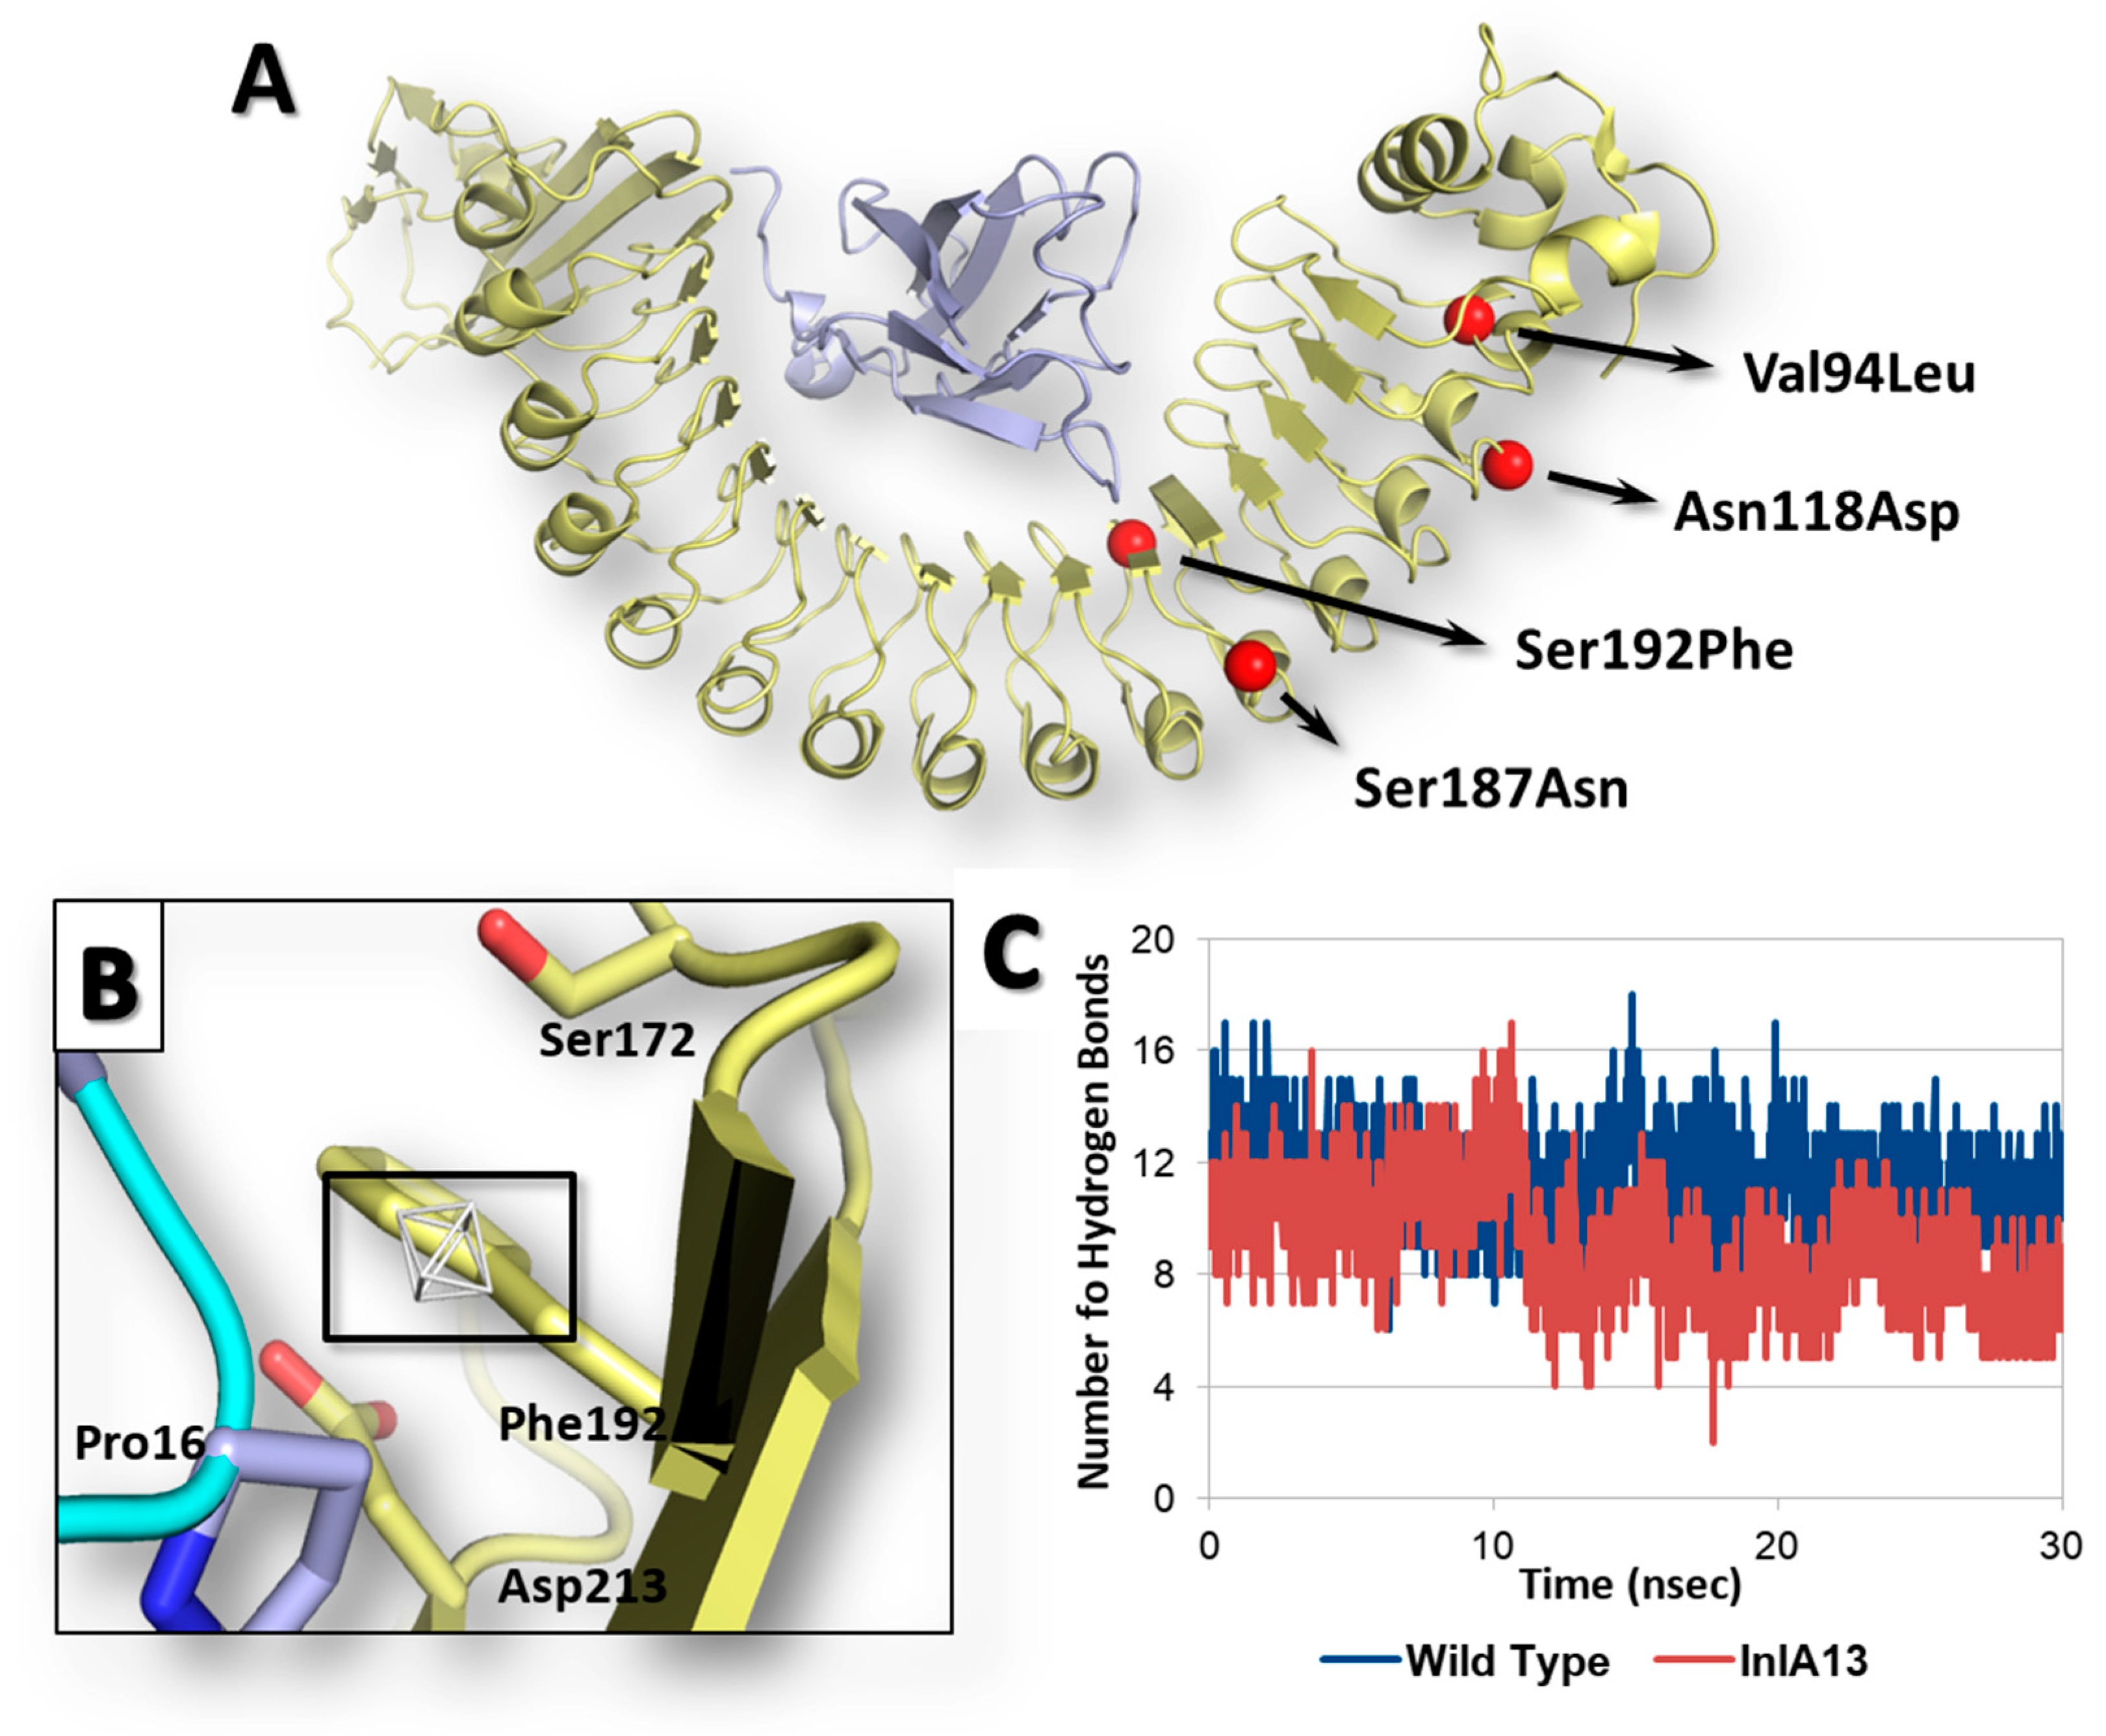 Toxins Free Full Text A Structural Study On The Listeria Monocytogenes Internalin Human E Cadherin Interaction Molecular Tool To Investigate Effects Of Missense Mutations